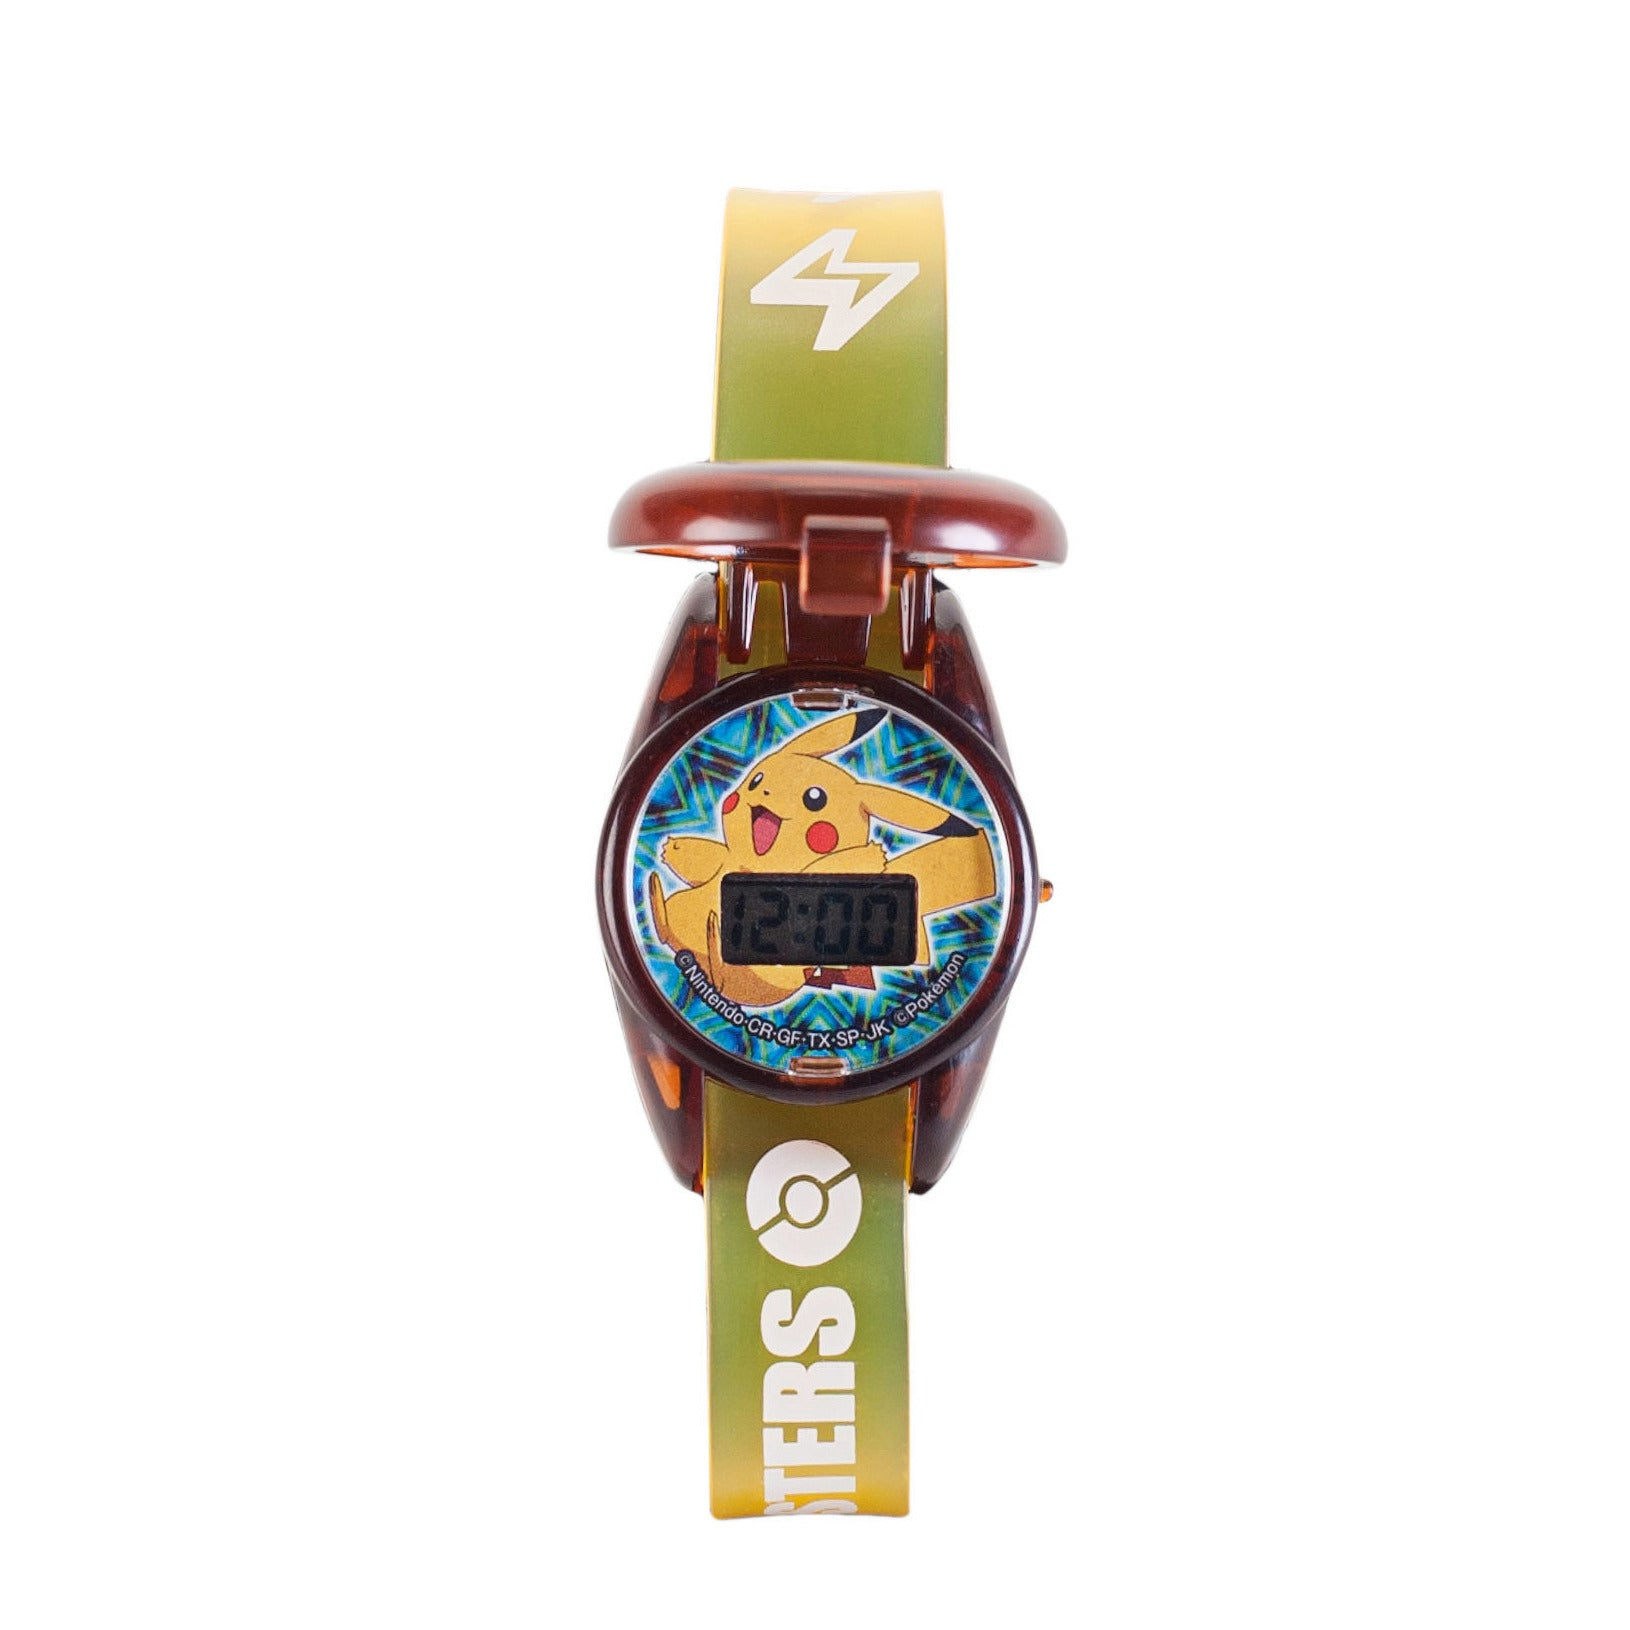 Pokemon: XY Pocket Monsters Series 2 Pikachu Wrist Watch